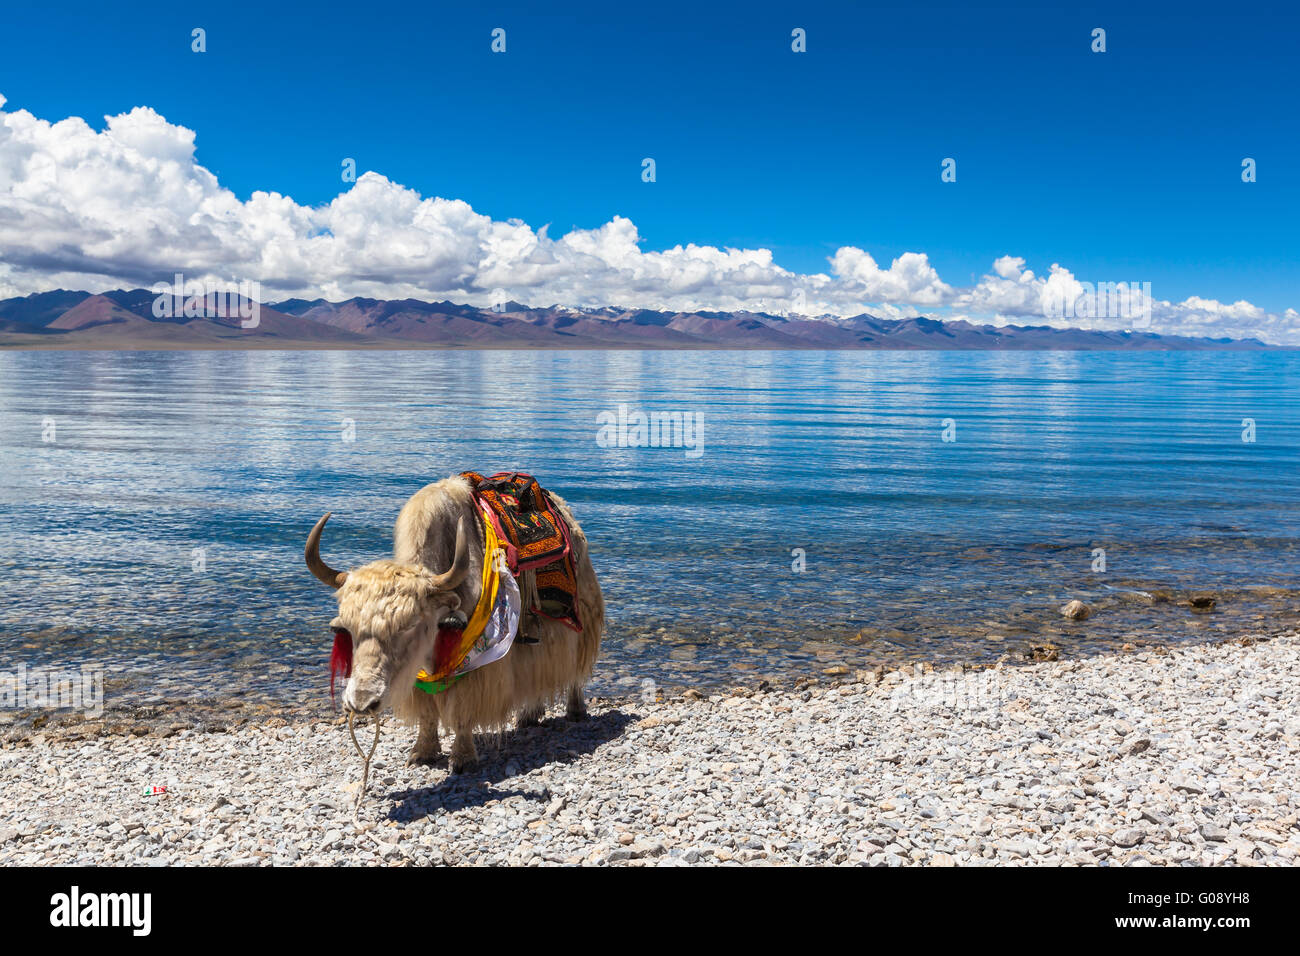 White yak standing on the lakeside of Namtso, Tibet, China - Stock Image